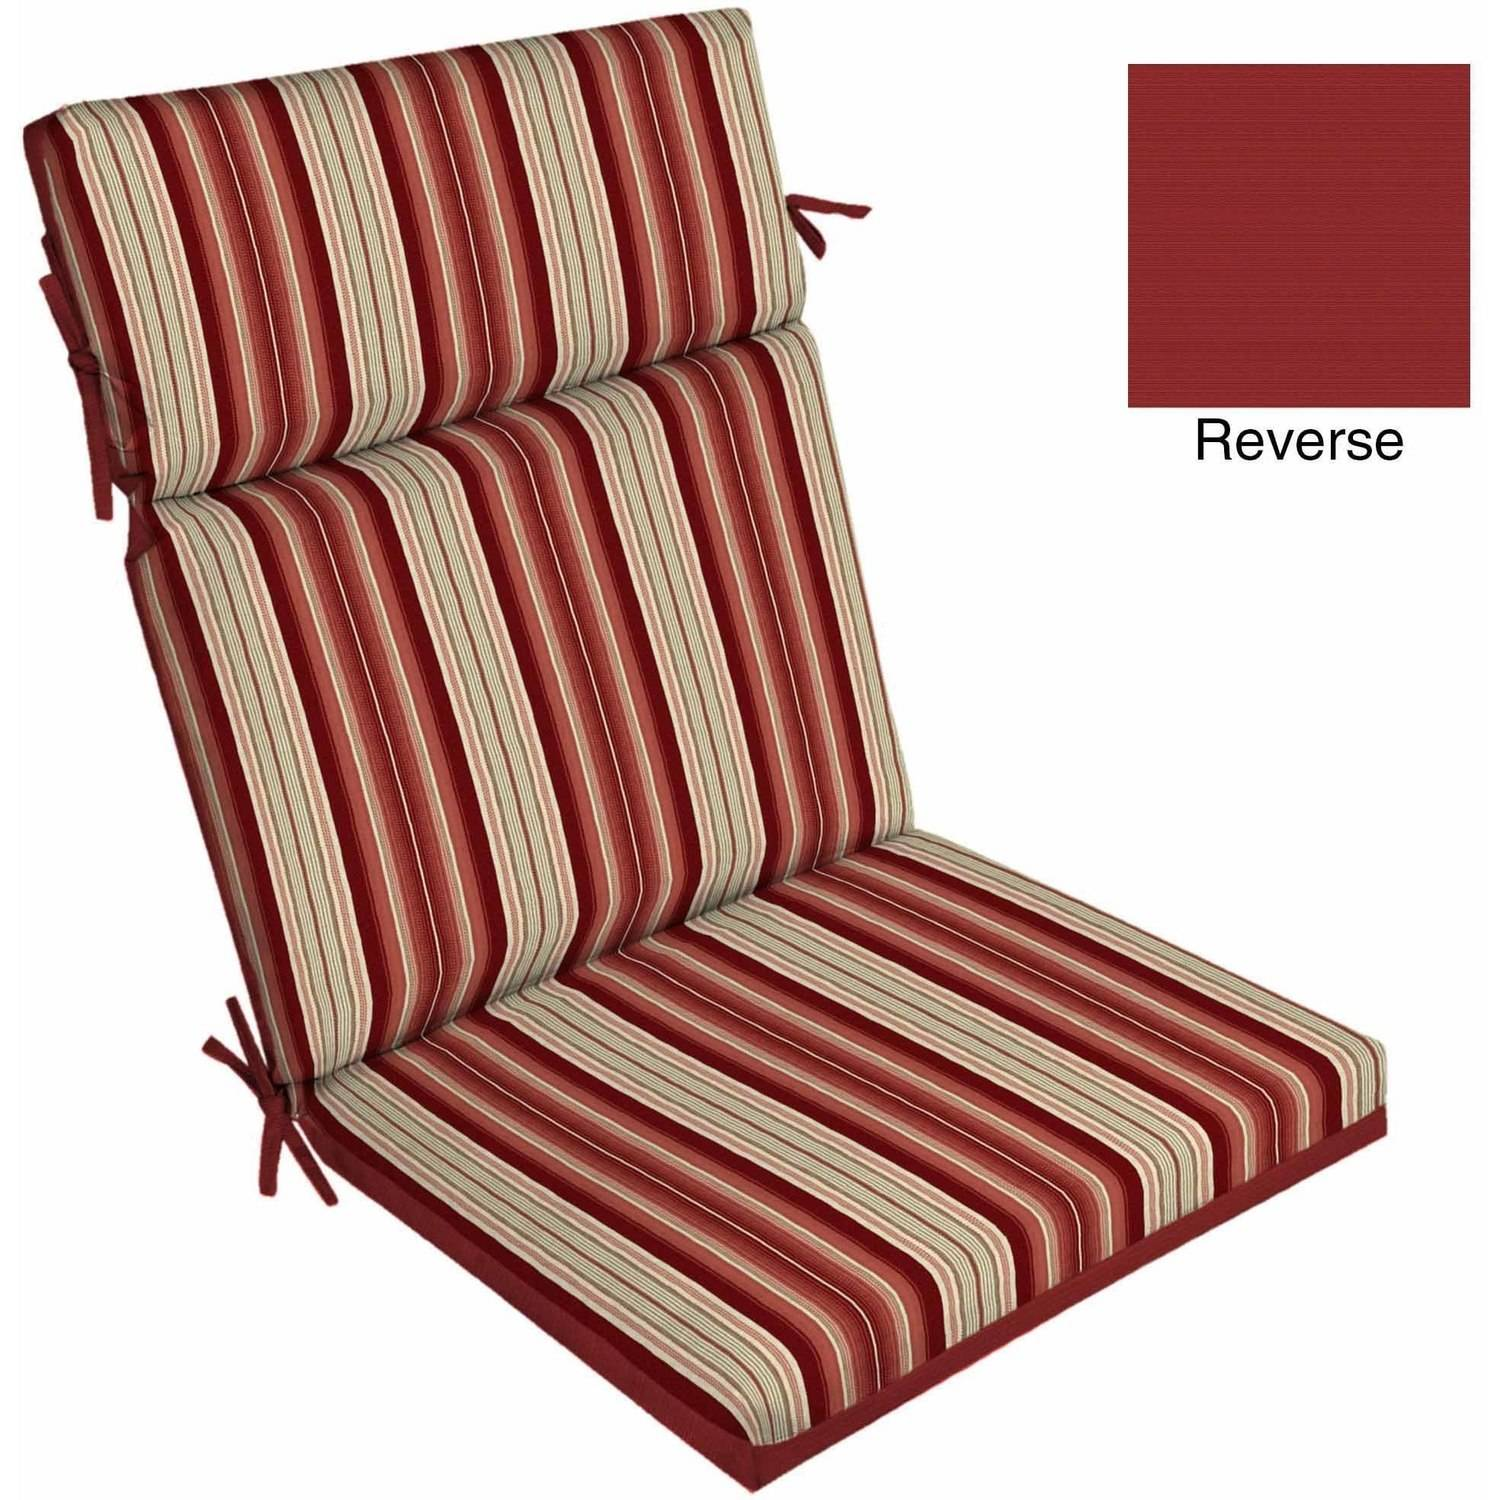 outdoor furniture cushions better homes and gardens outdoor patio reversible dining chair cushion hjxocyv